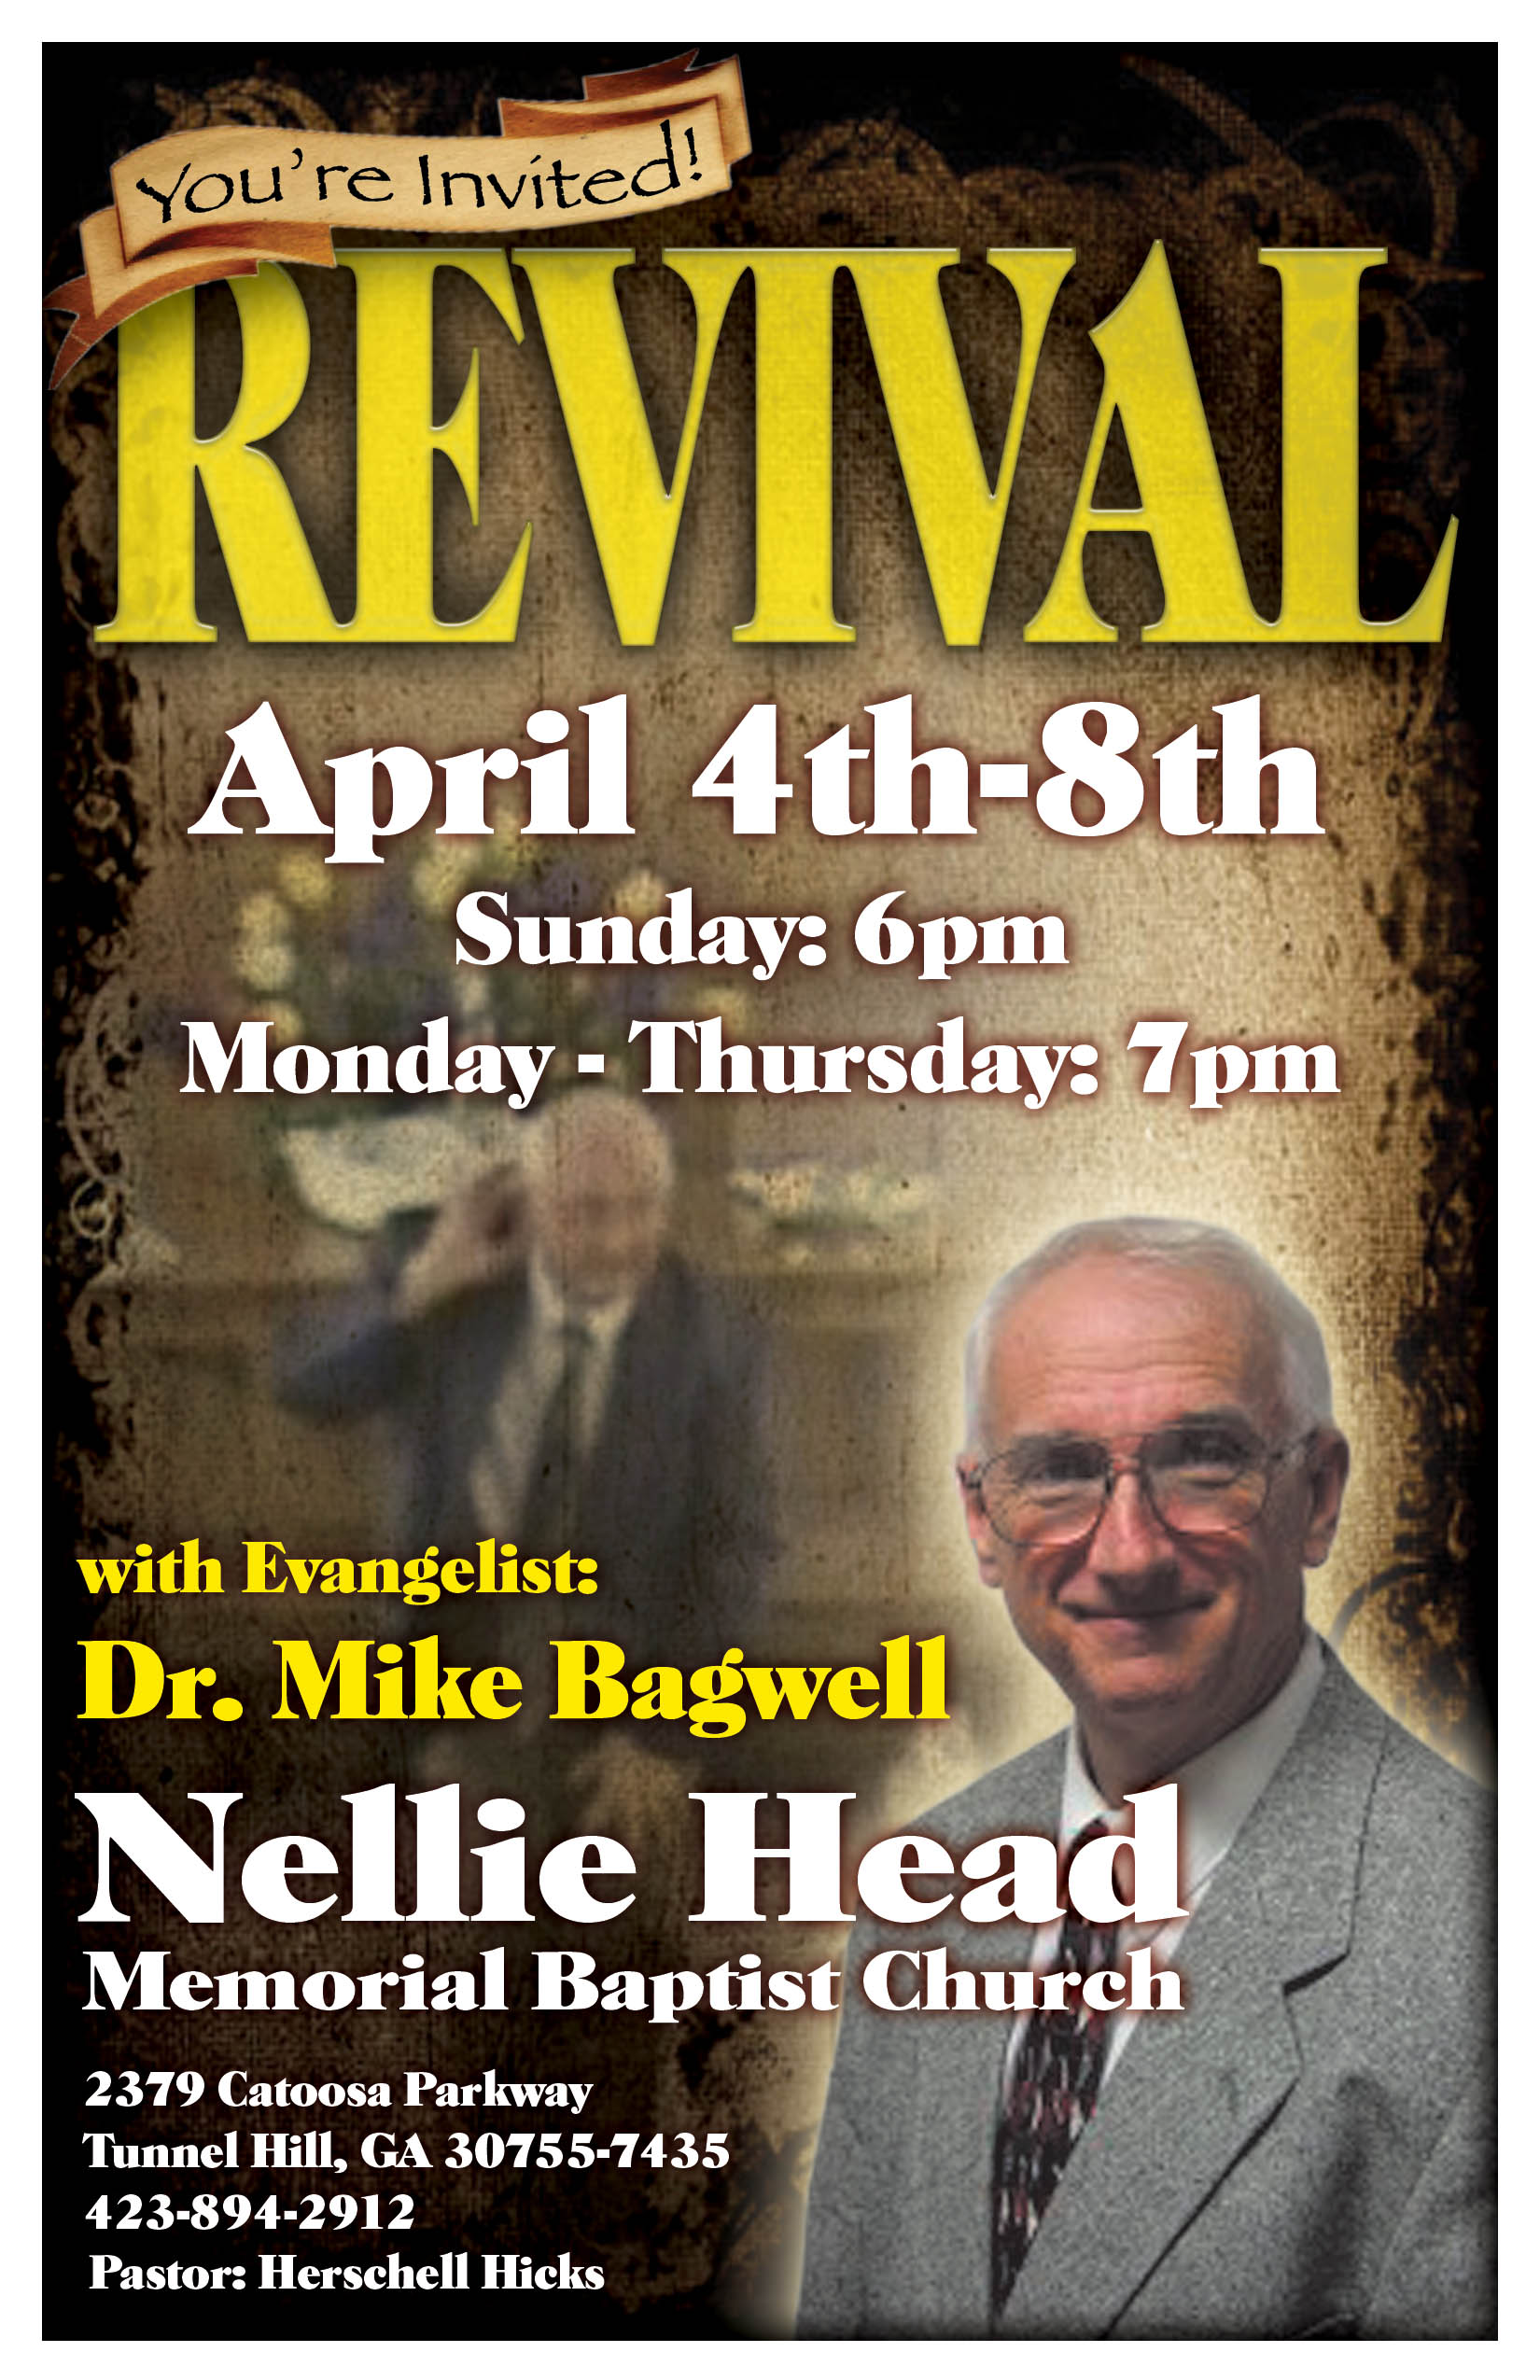 revival flyerChurch Revival Flyers HlSXE5hB